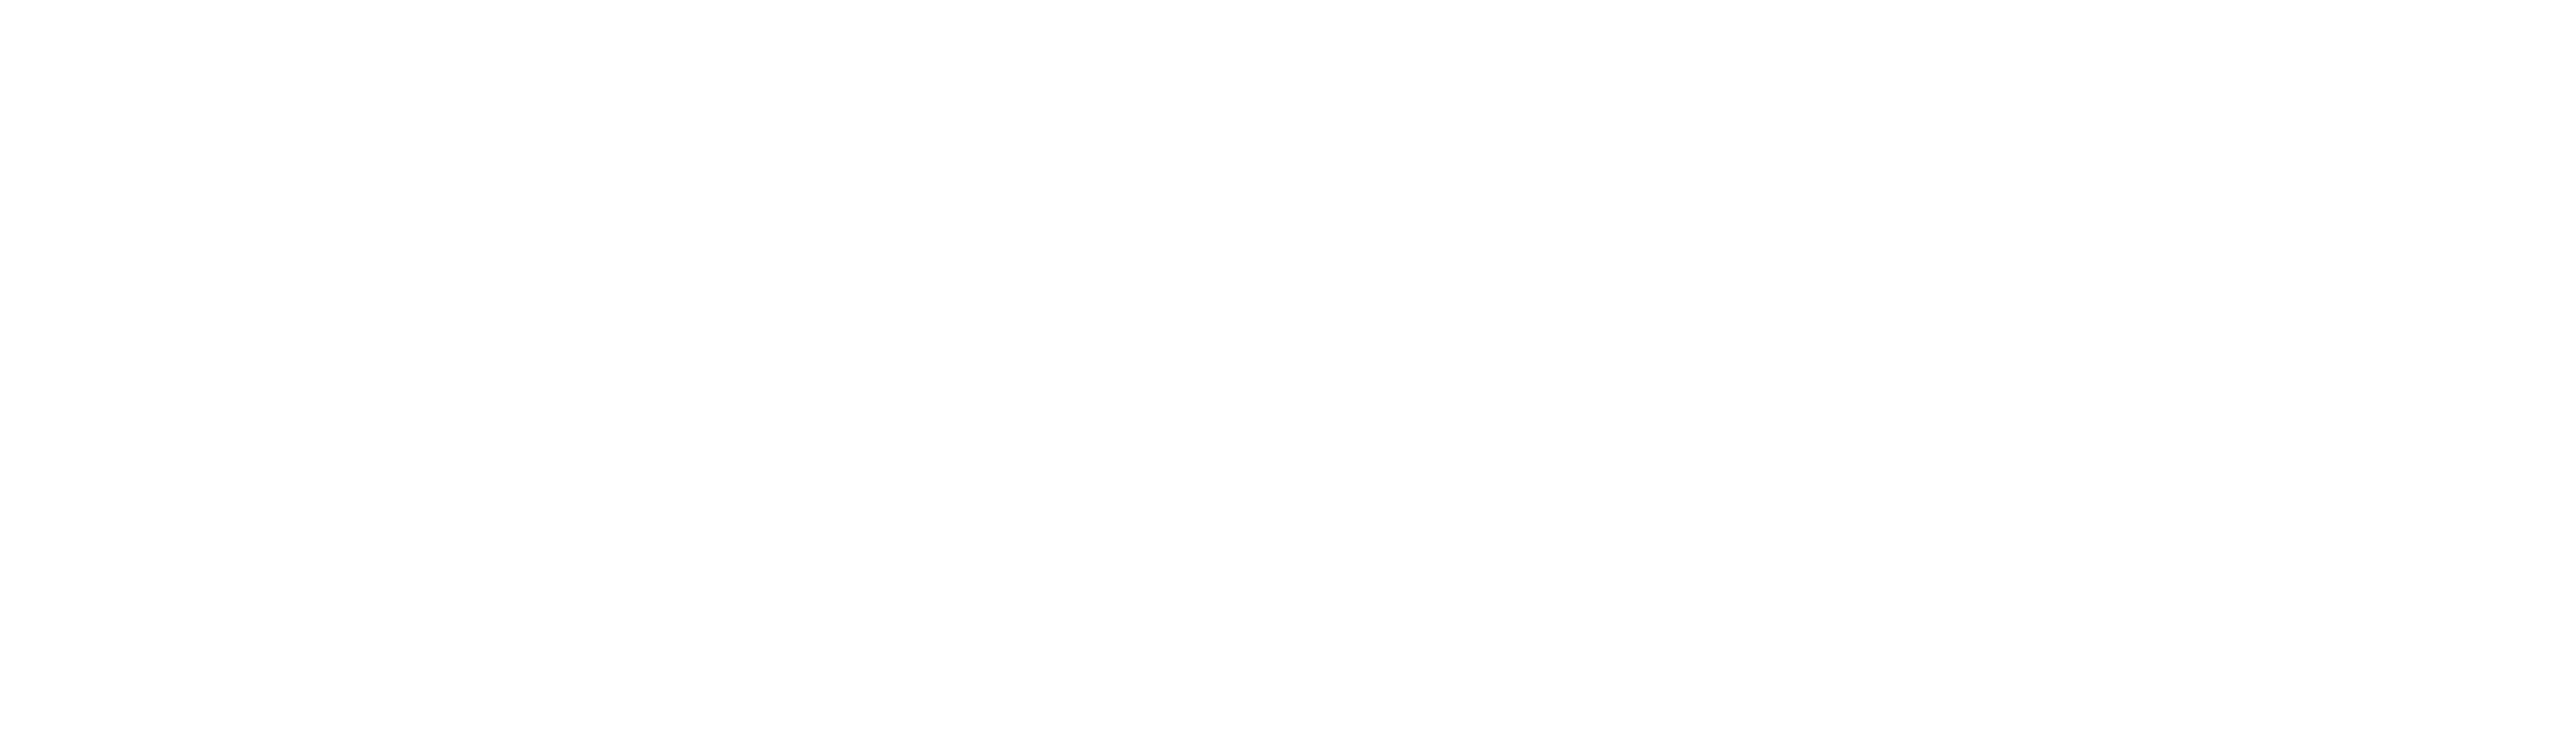 Oldham Engineering Logo